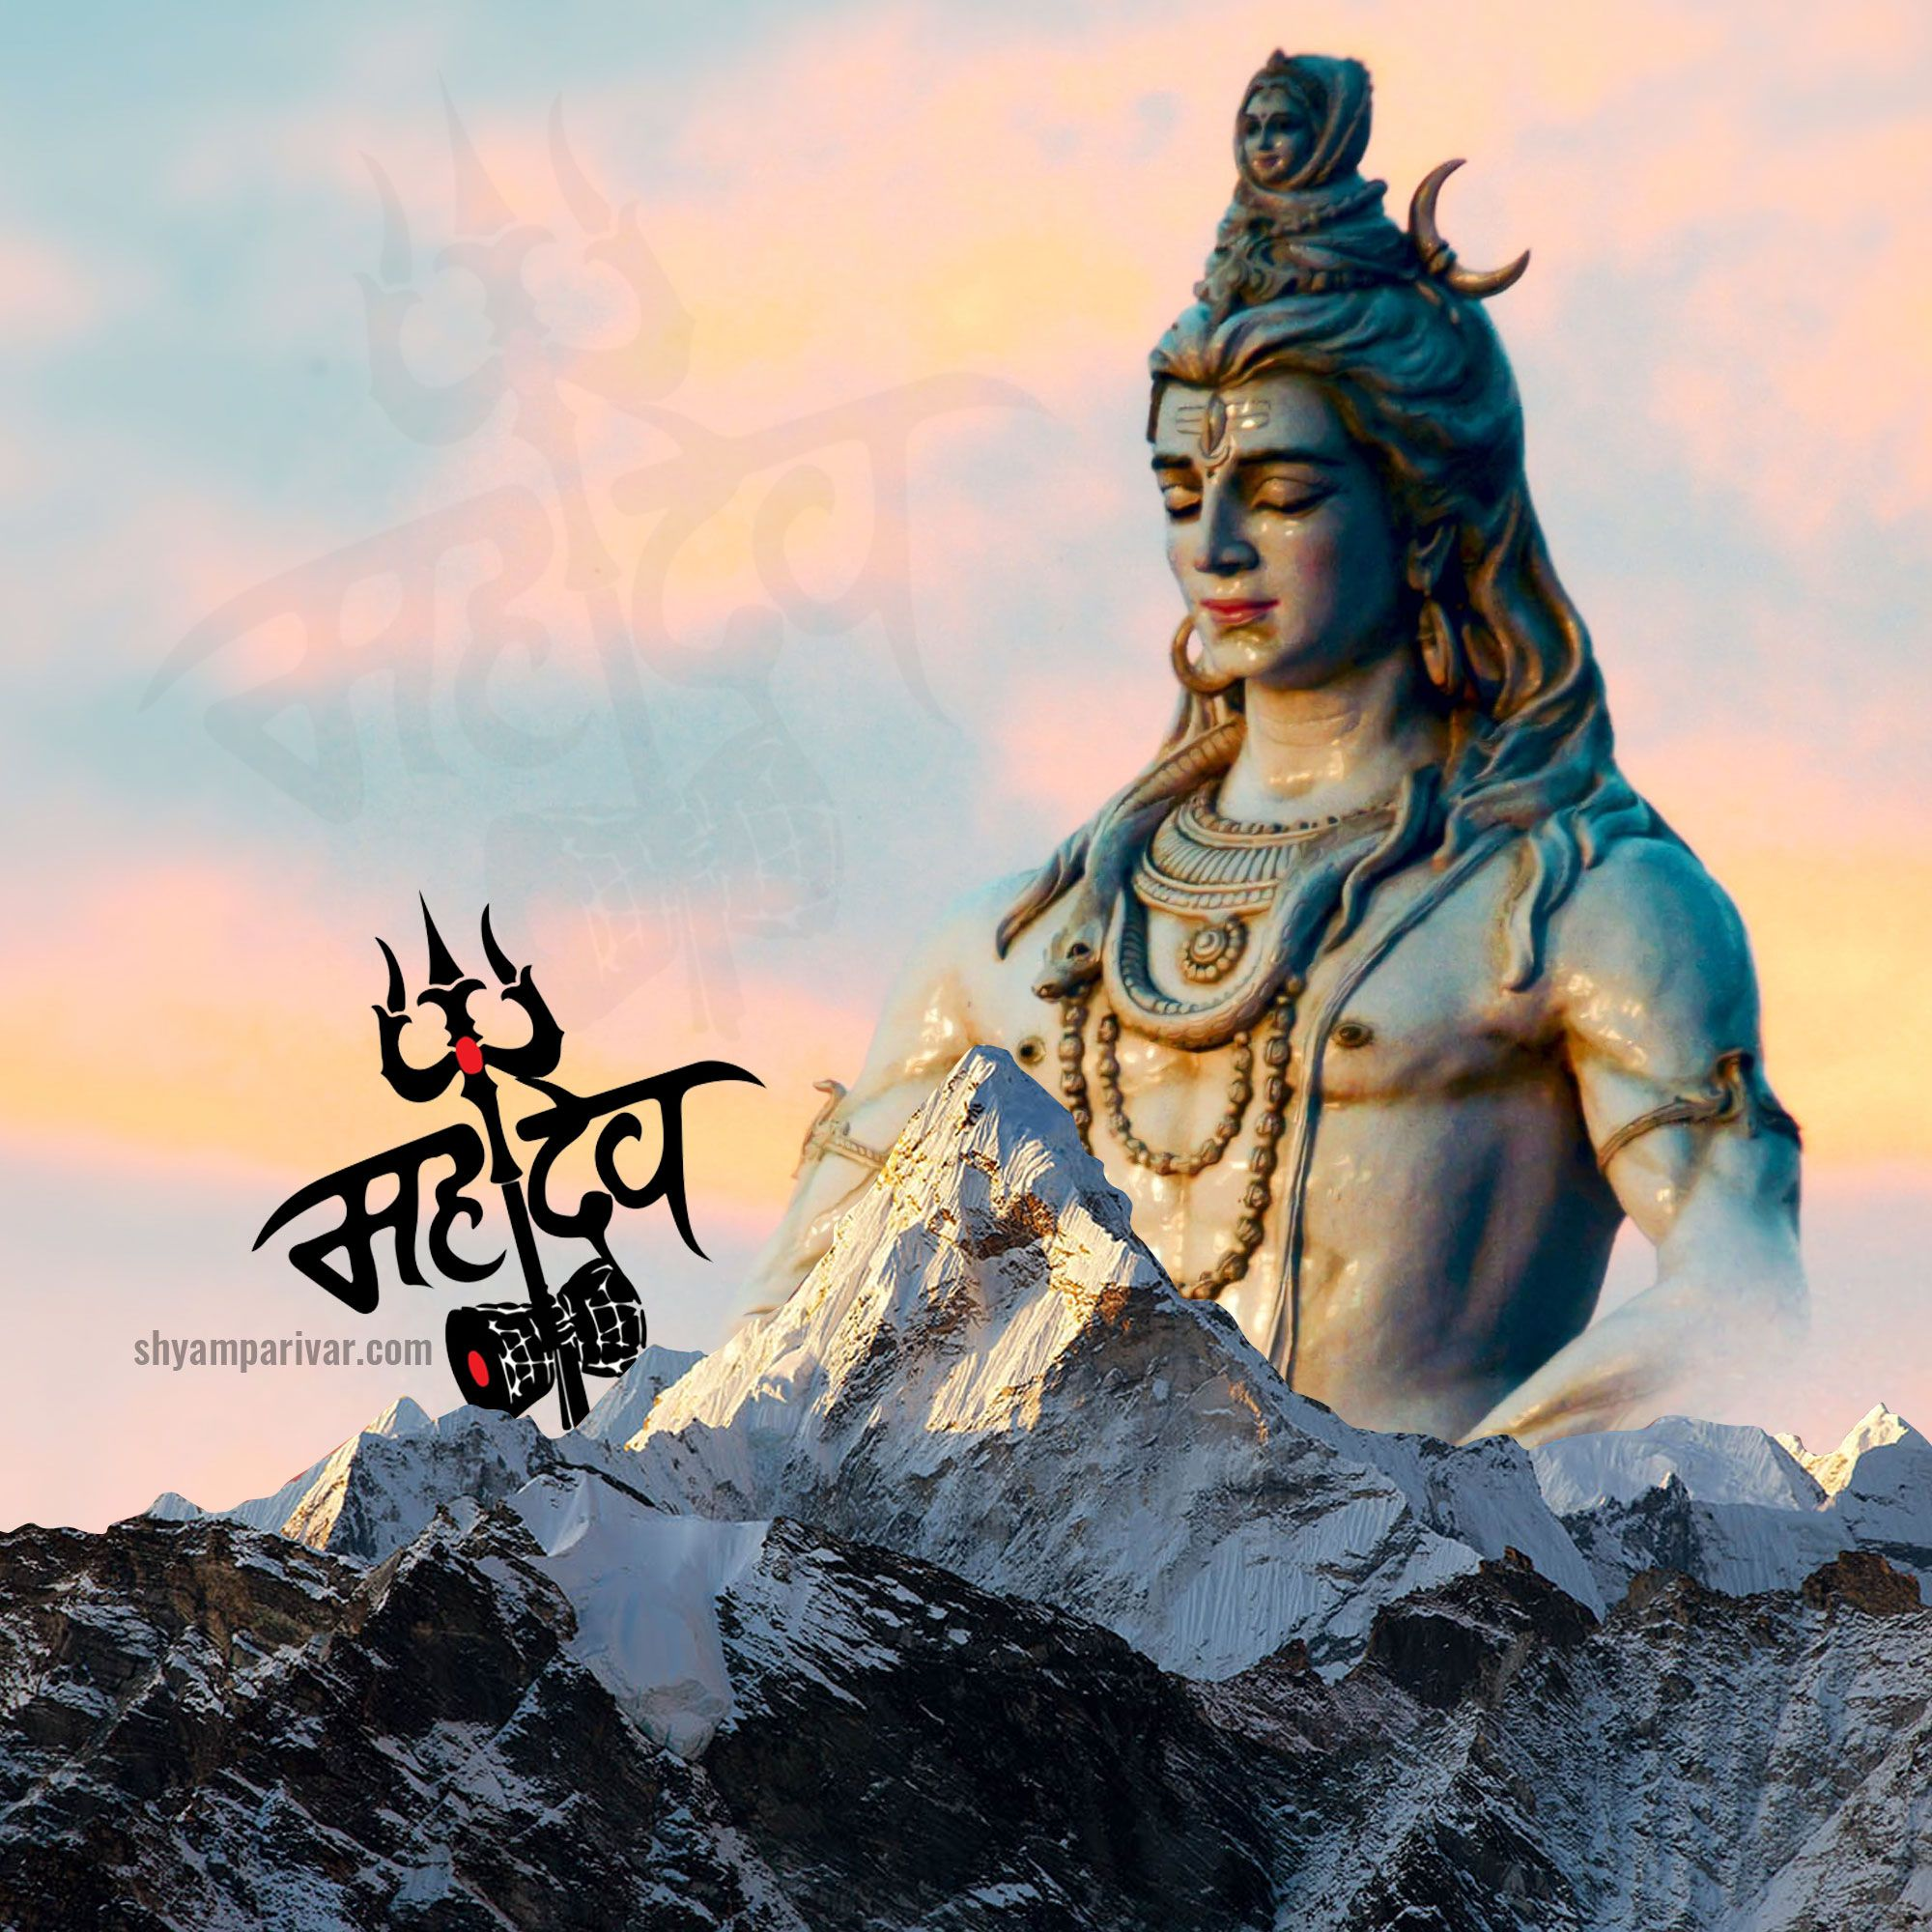 Lord Shiva Hd Wallpapers Free Download In 2020 Lord Shiva Hd Wallpaper Lord Shiva Pics Lord Shiva